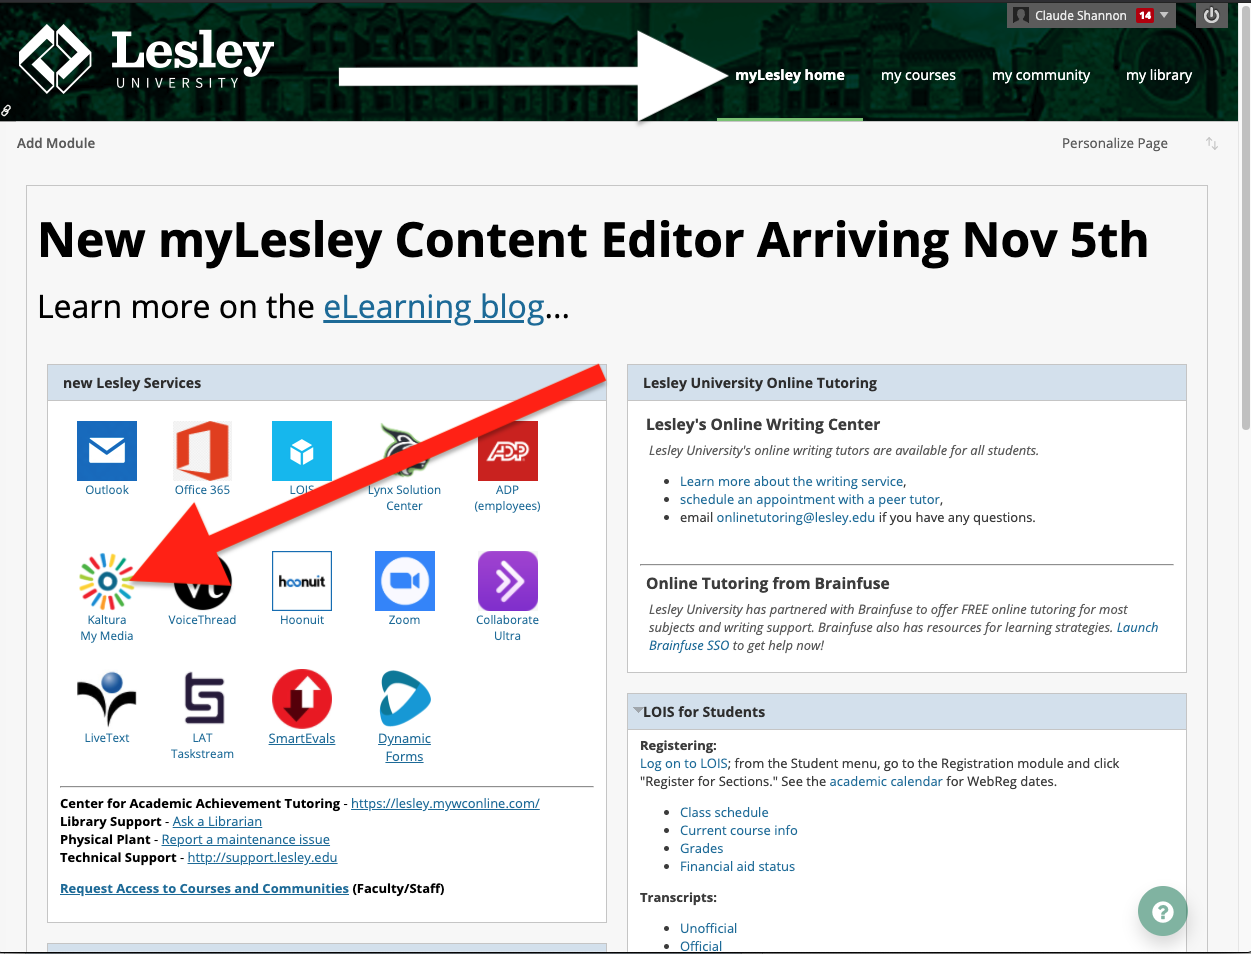 to access your kaltura my media, click on the kaltura my media icon in the new lesley services module